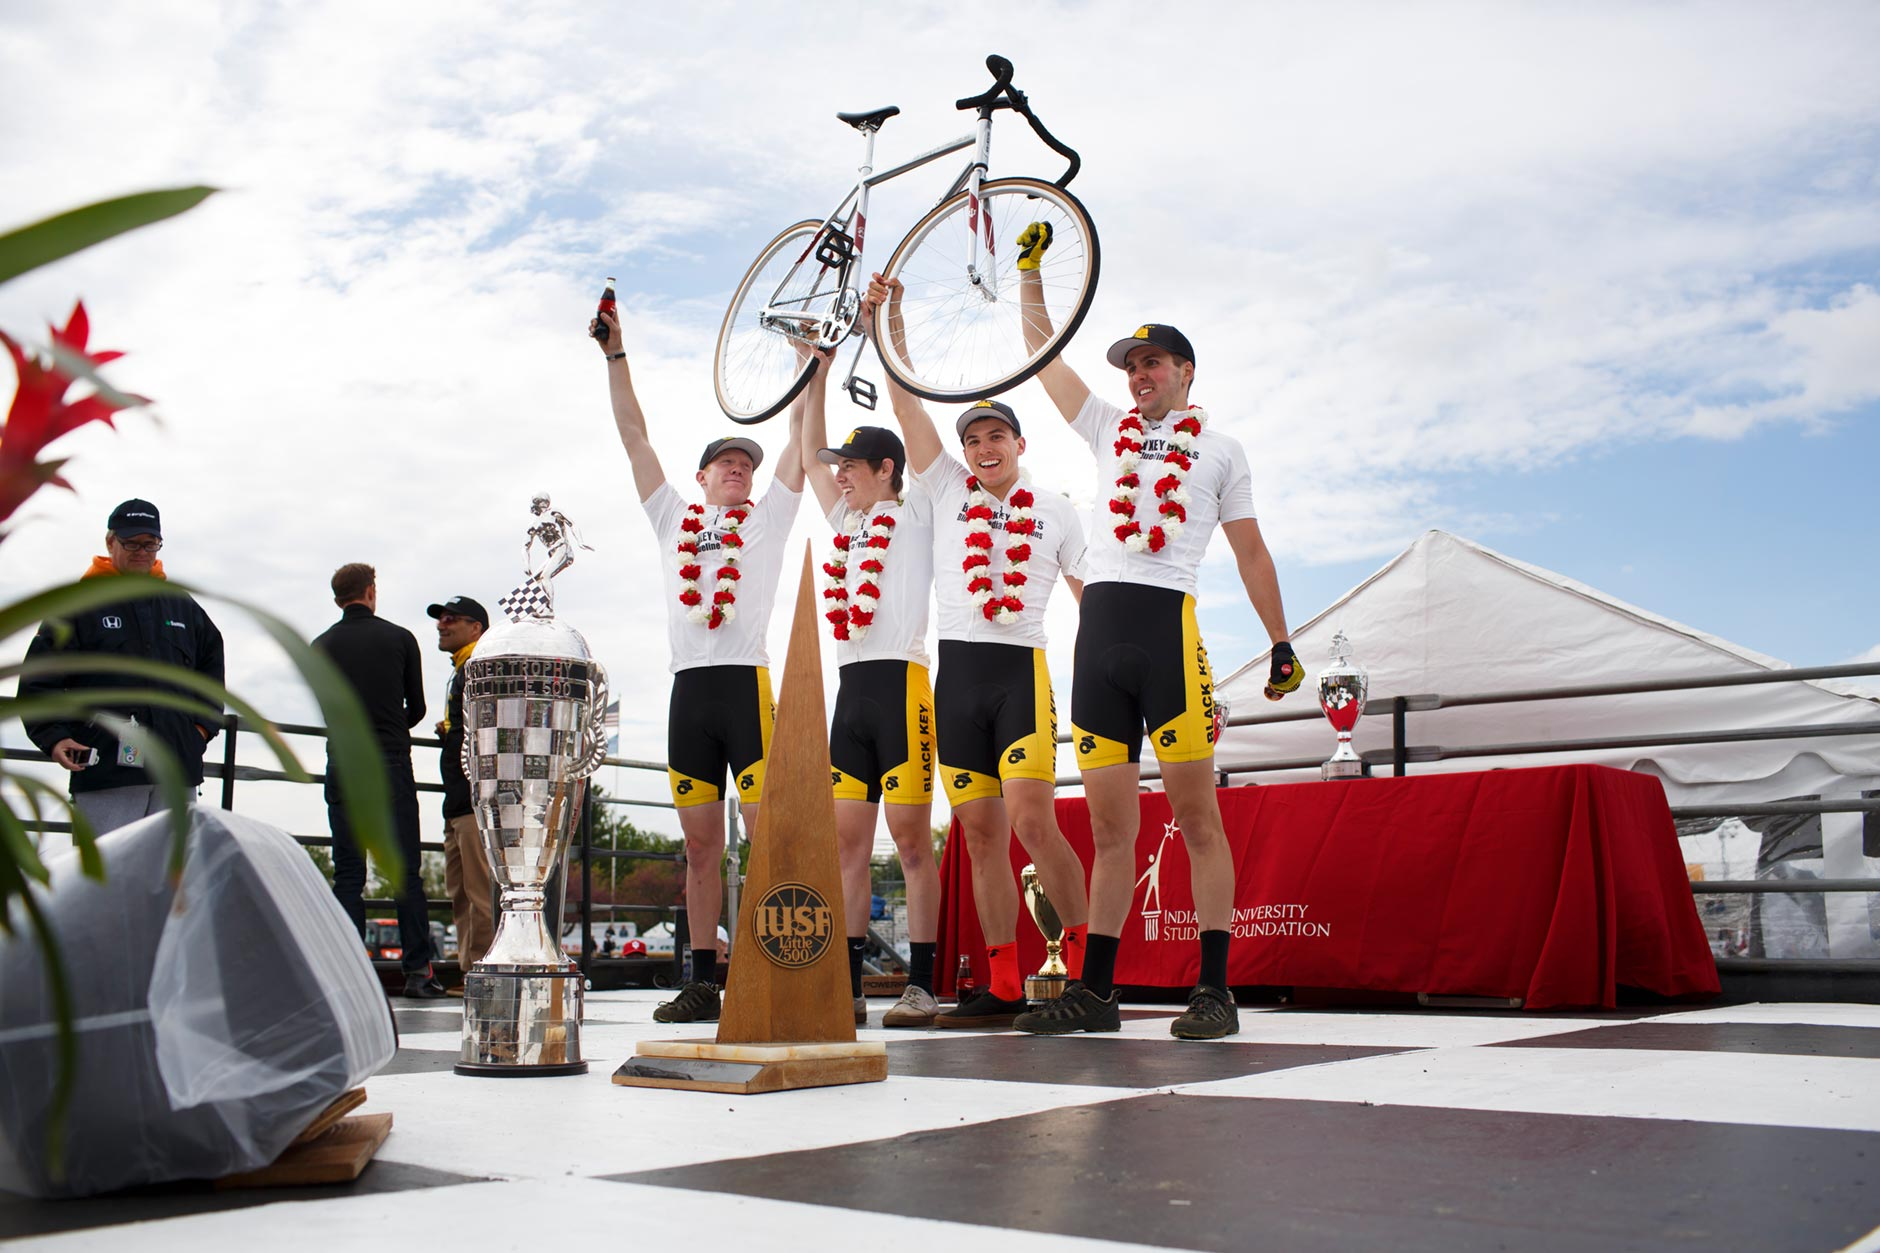 Black Key Bulls riders Kevin Mangel, left, Noah Voyles, Xavier Martinez and Charlie Hammon hoist a Schwinn bicycle above their heads in celebration after winning the Men's Little 500 at Bill Armstrong Stadium on Saturday, April 22, 2017. (James Brosher/IU Communications)